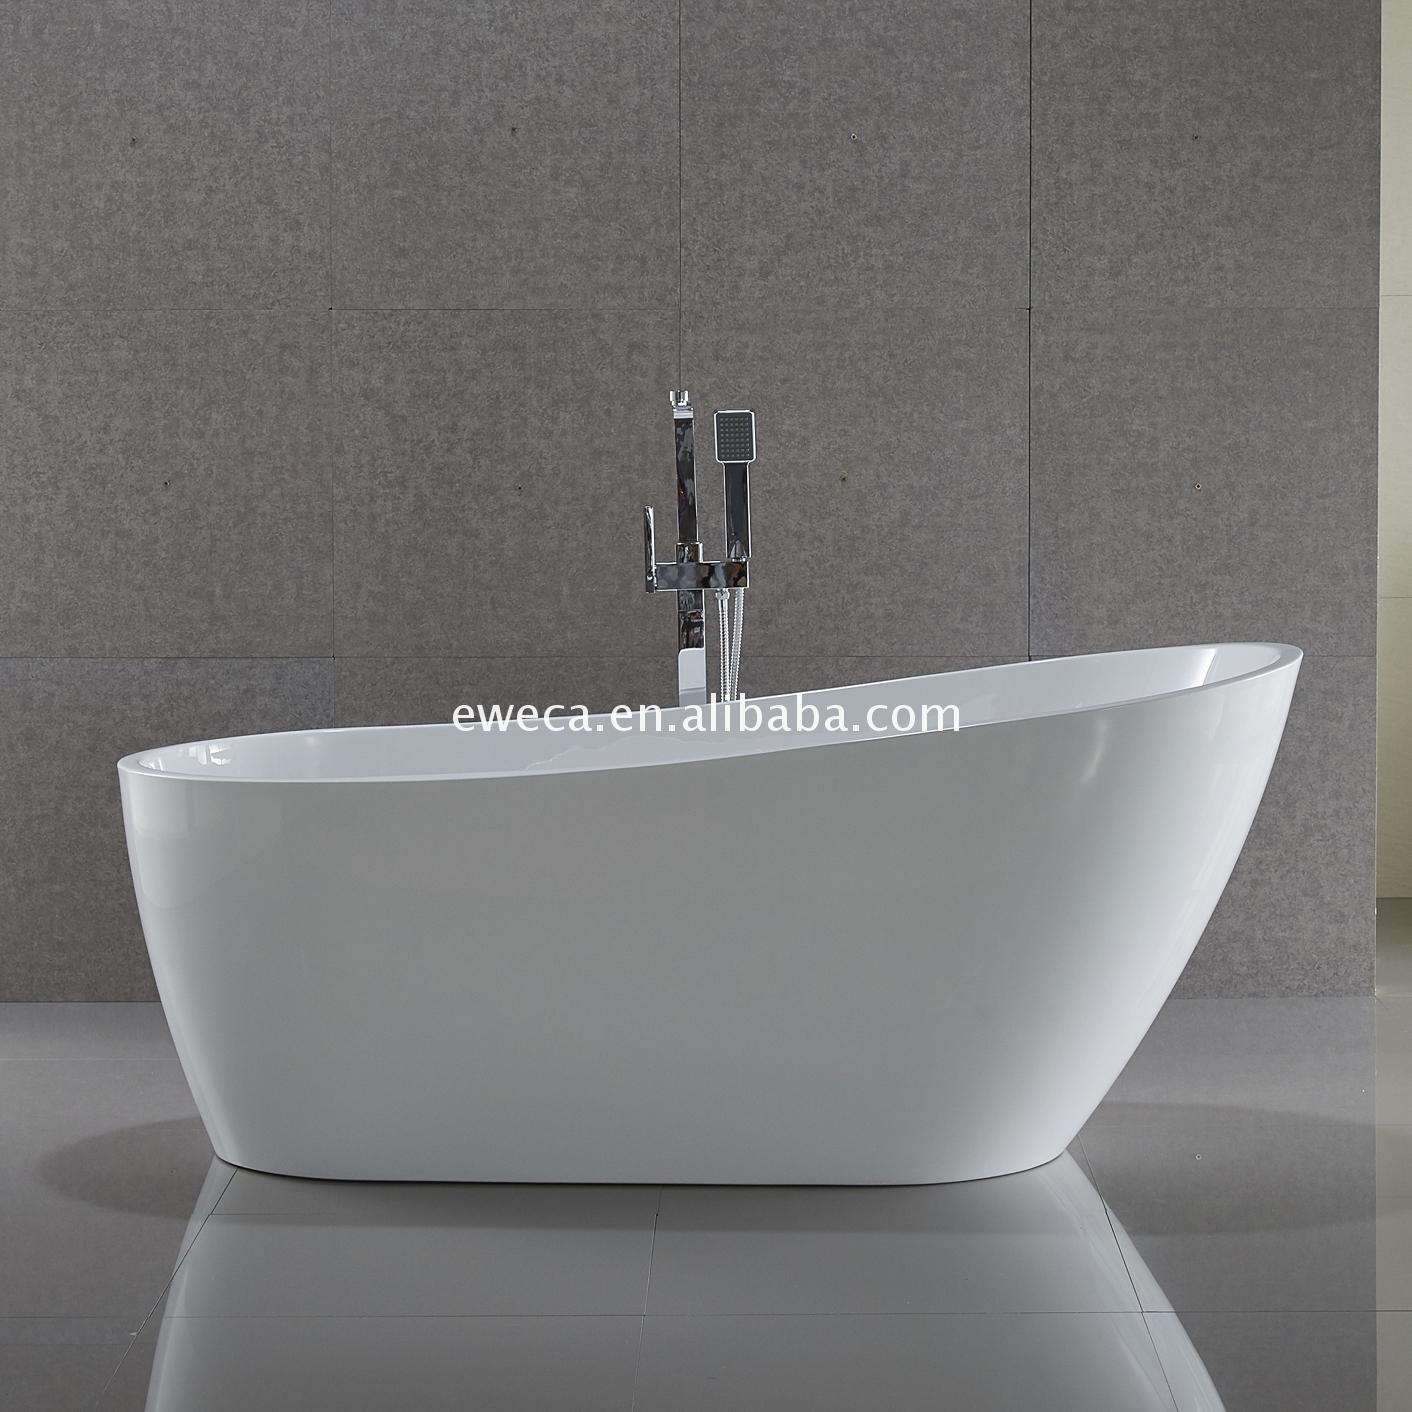 bathtubs tub standard standing freestanding soaker american free bathroom coastal bath serin